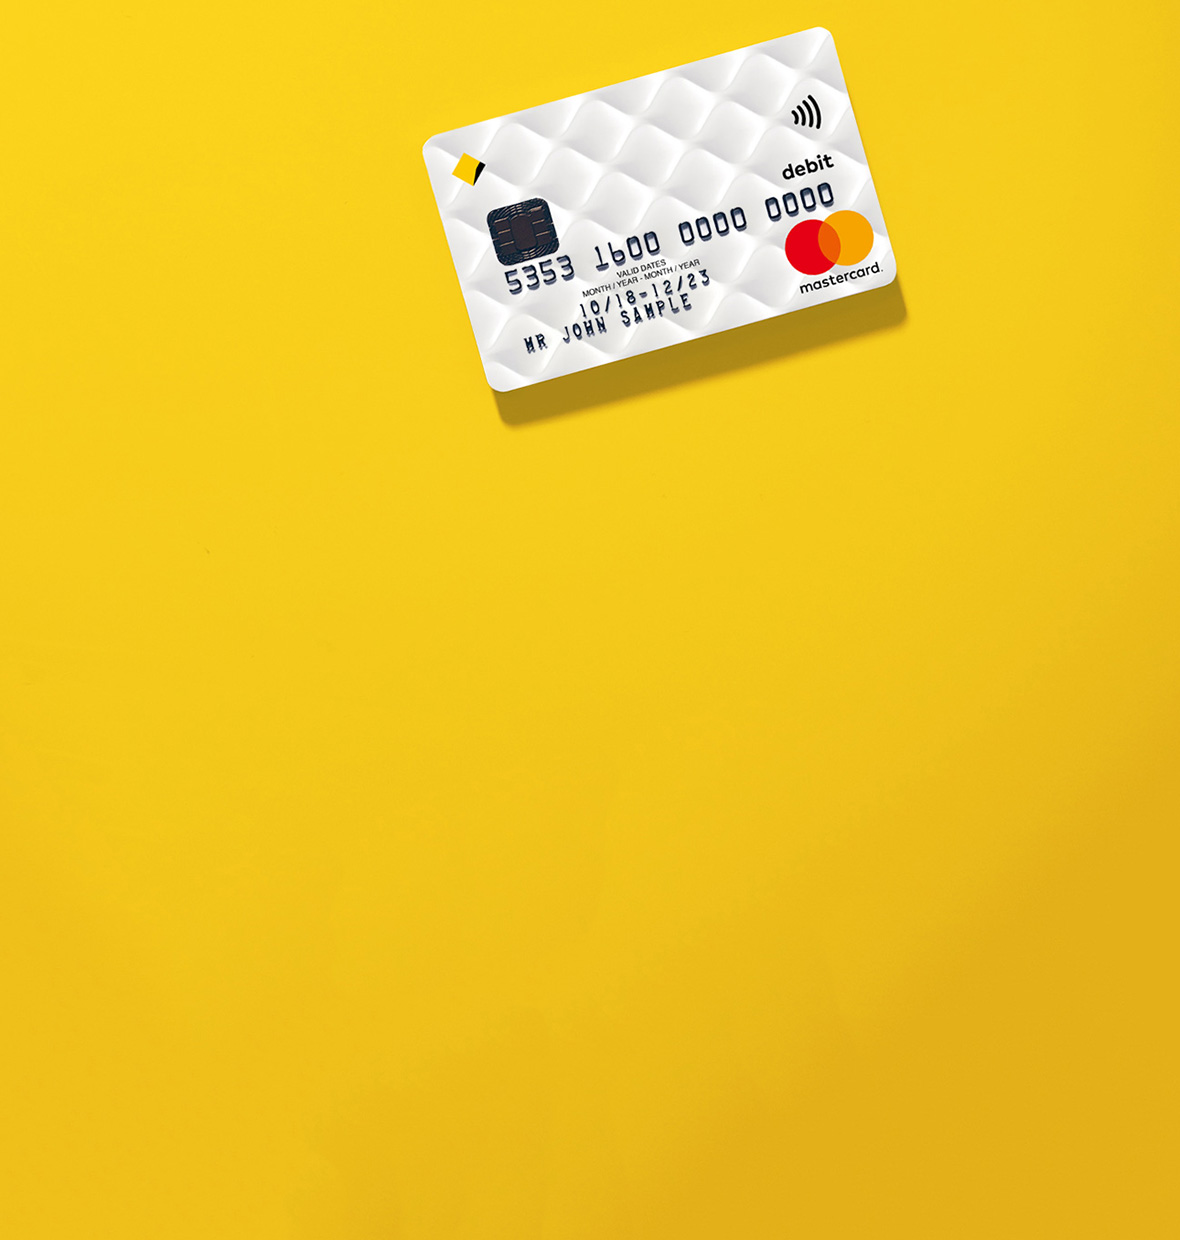 Debit Mastercard - CommBank